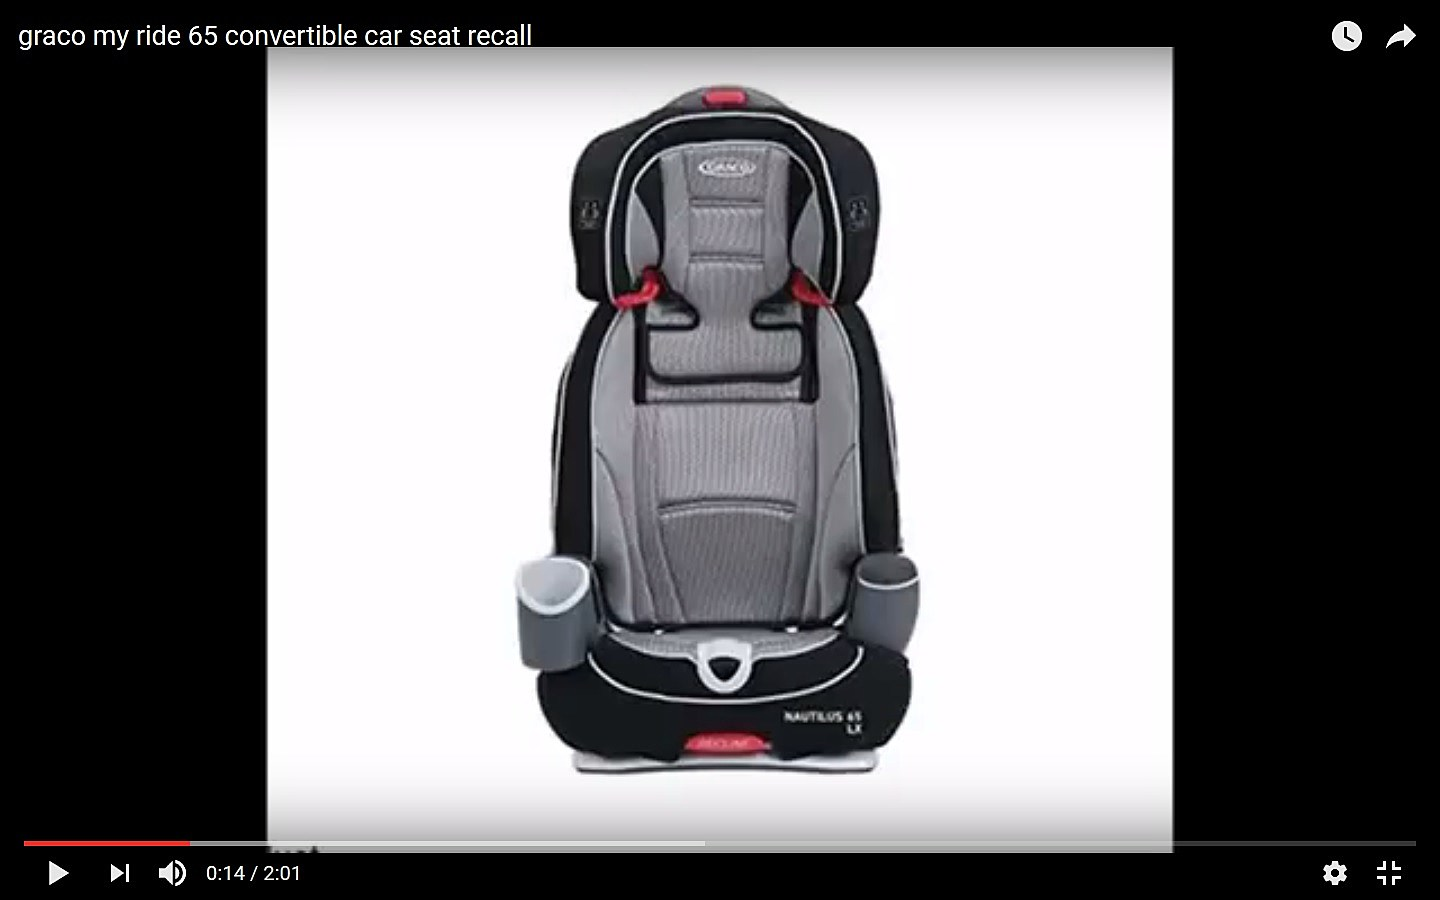 Over 25 000 Child Seats Recalled Due To Safety Concerns